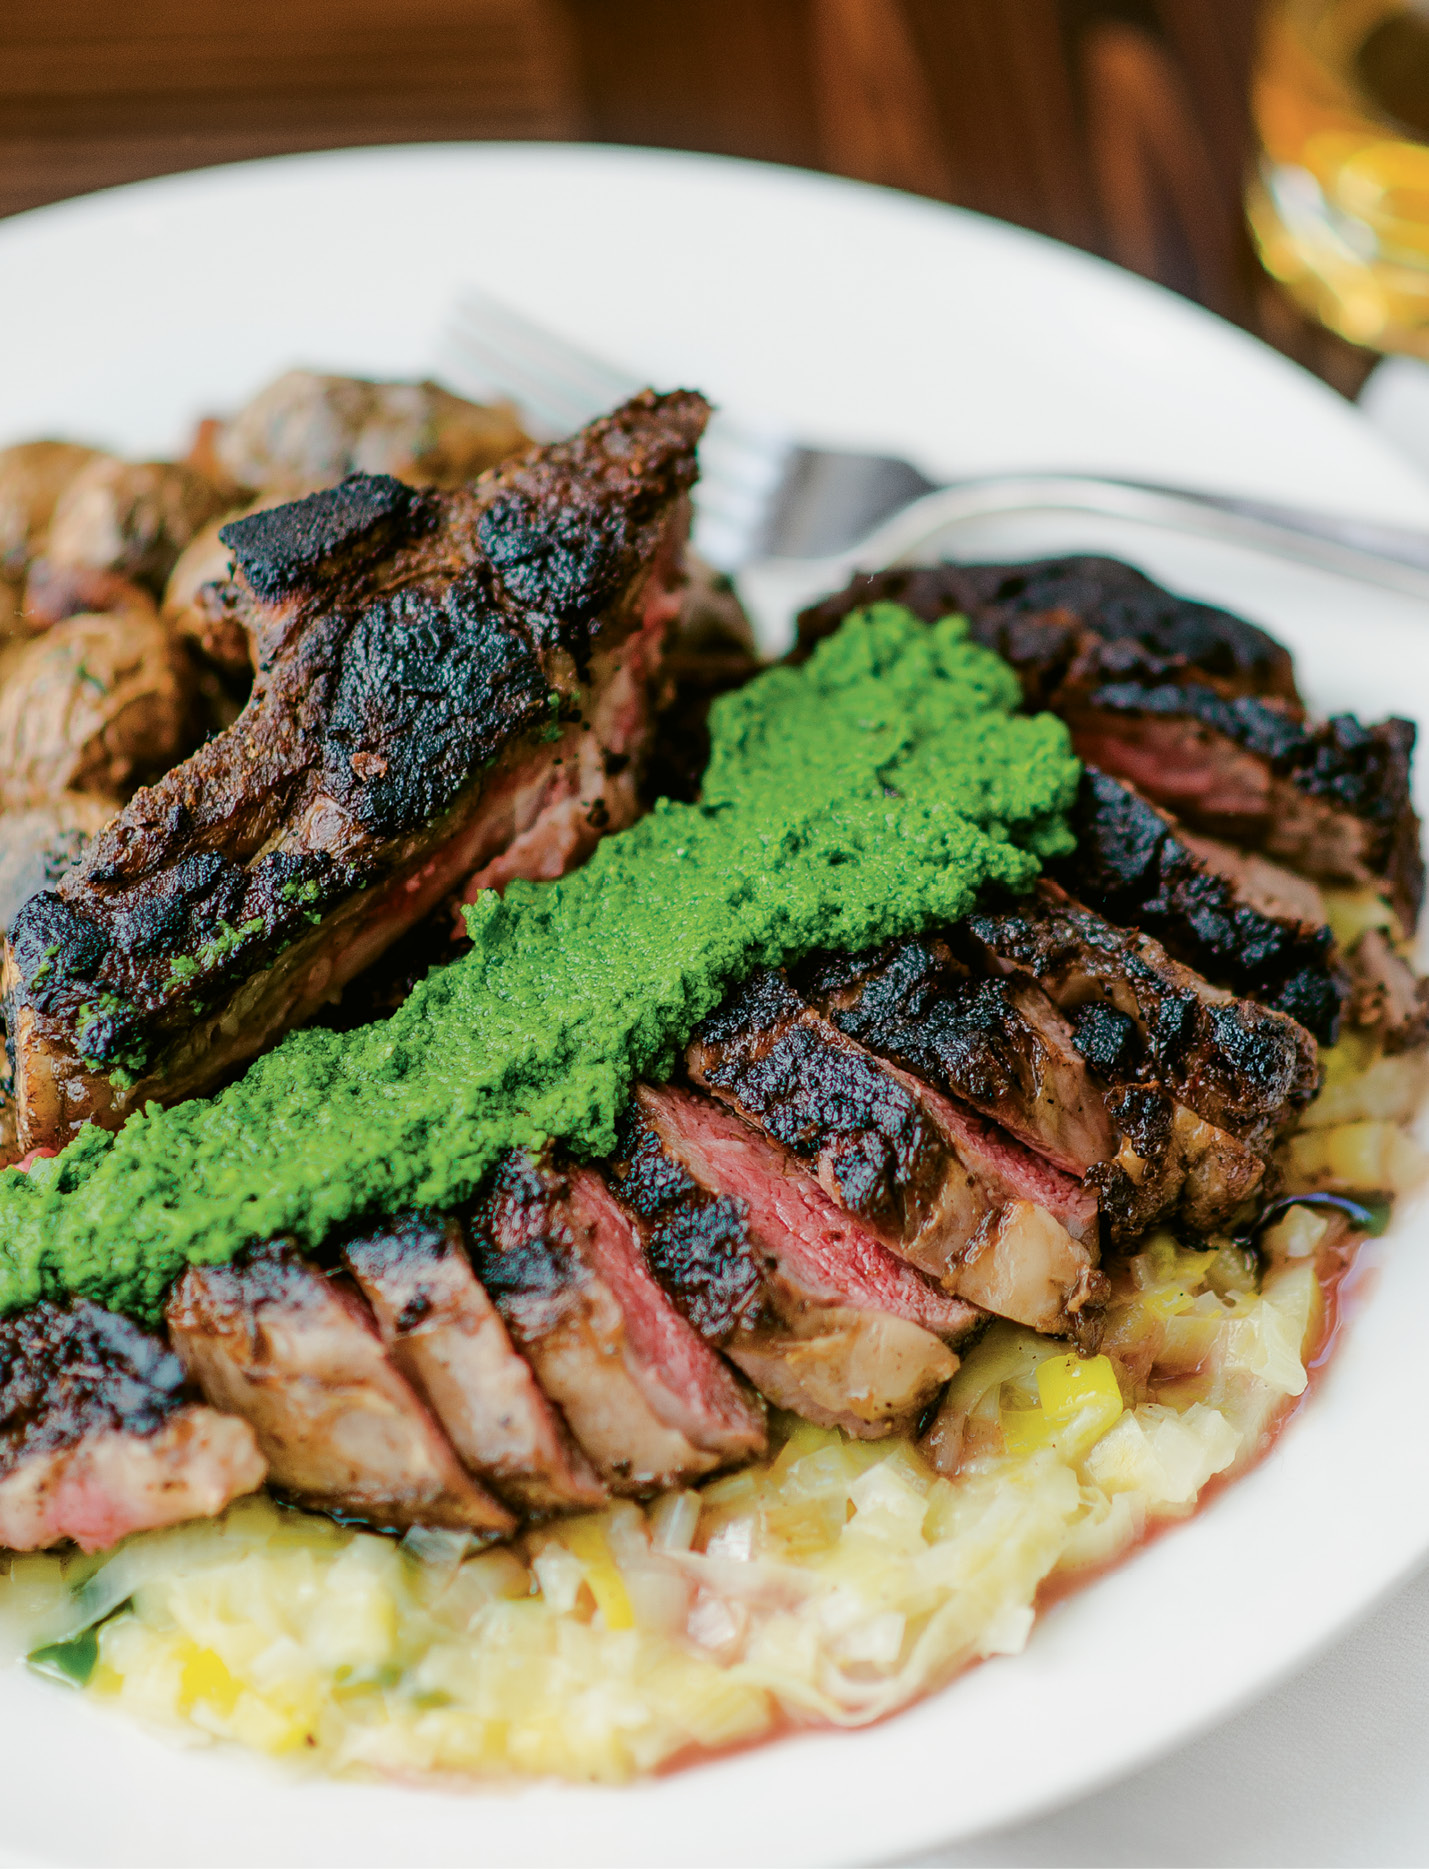 Dinner for Two: The salsa verde adds acidity and a dash of color to the rib eye